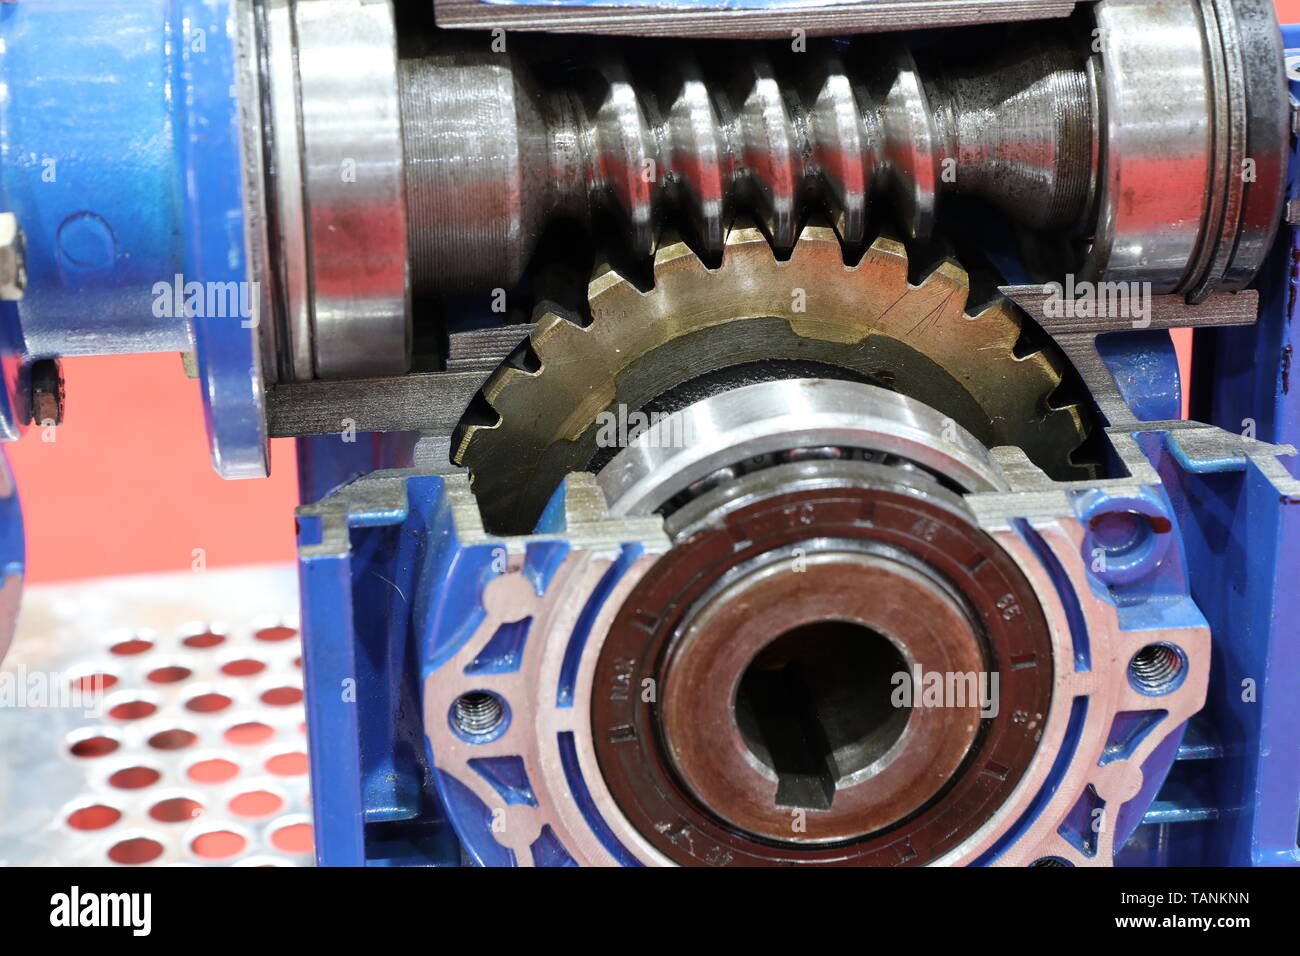 Worm Gear Stock Photos & Worm Gear Stock Images - Alamy